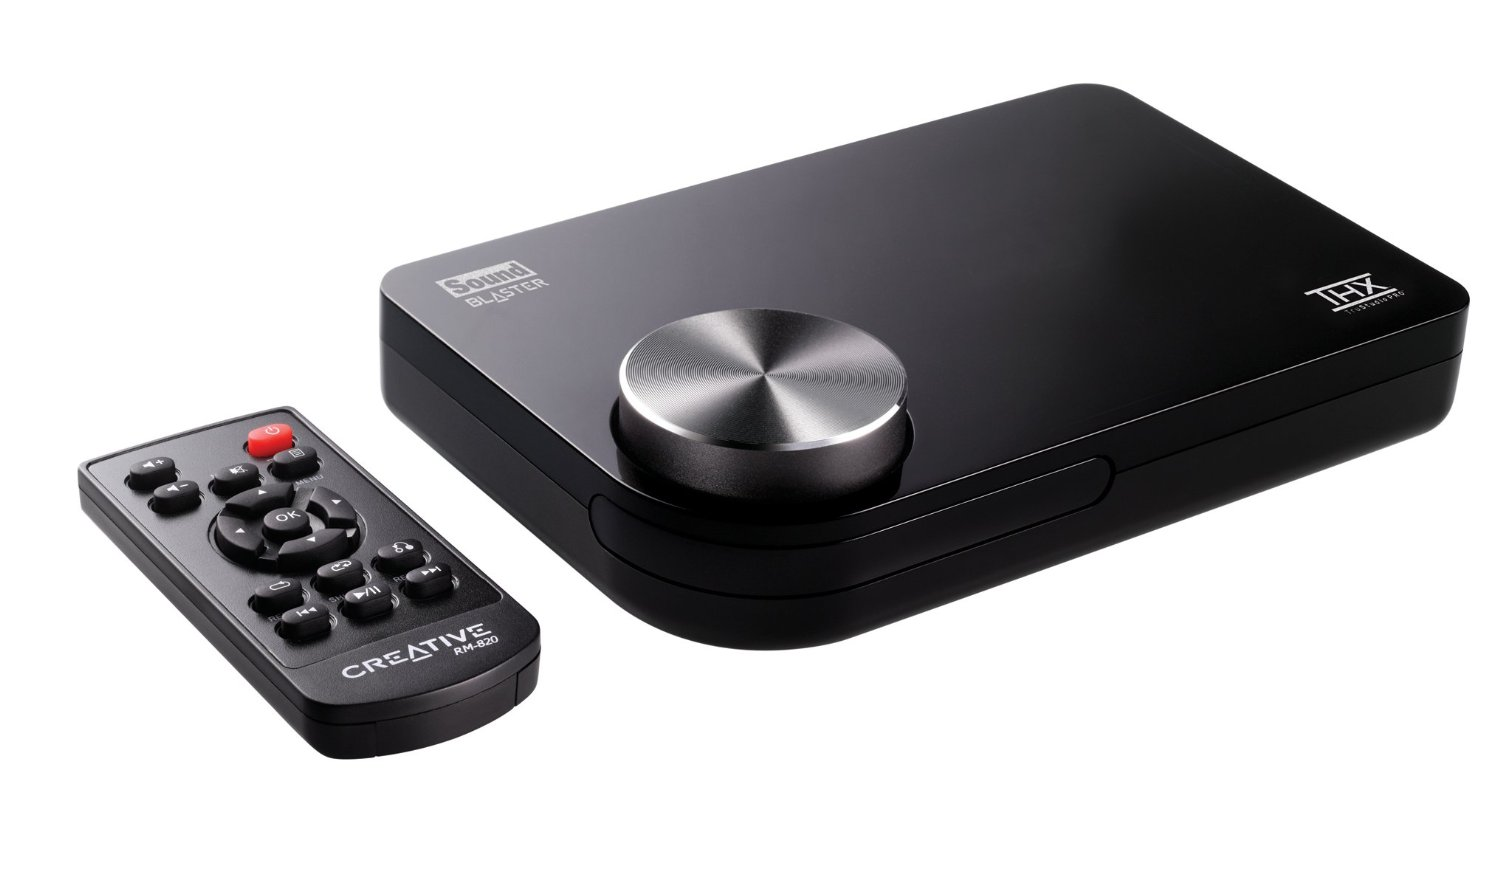 Sound_Blaster_X-FI_Surround_5.1_Pro_SB1095_(5.1USB) có remote